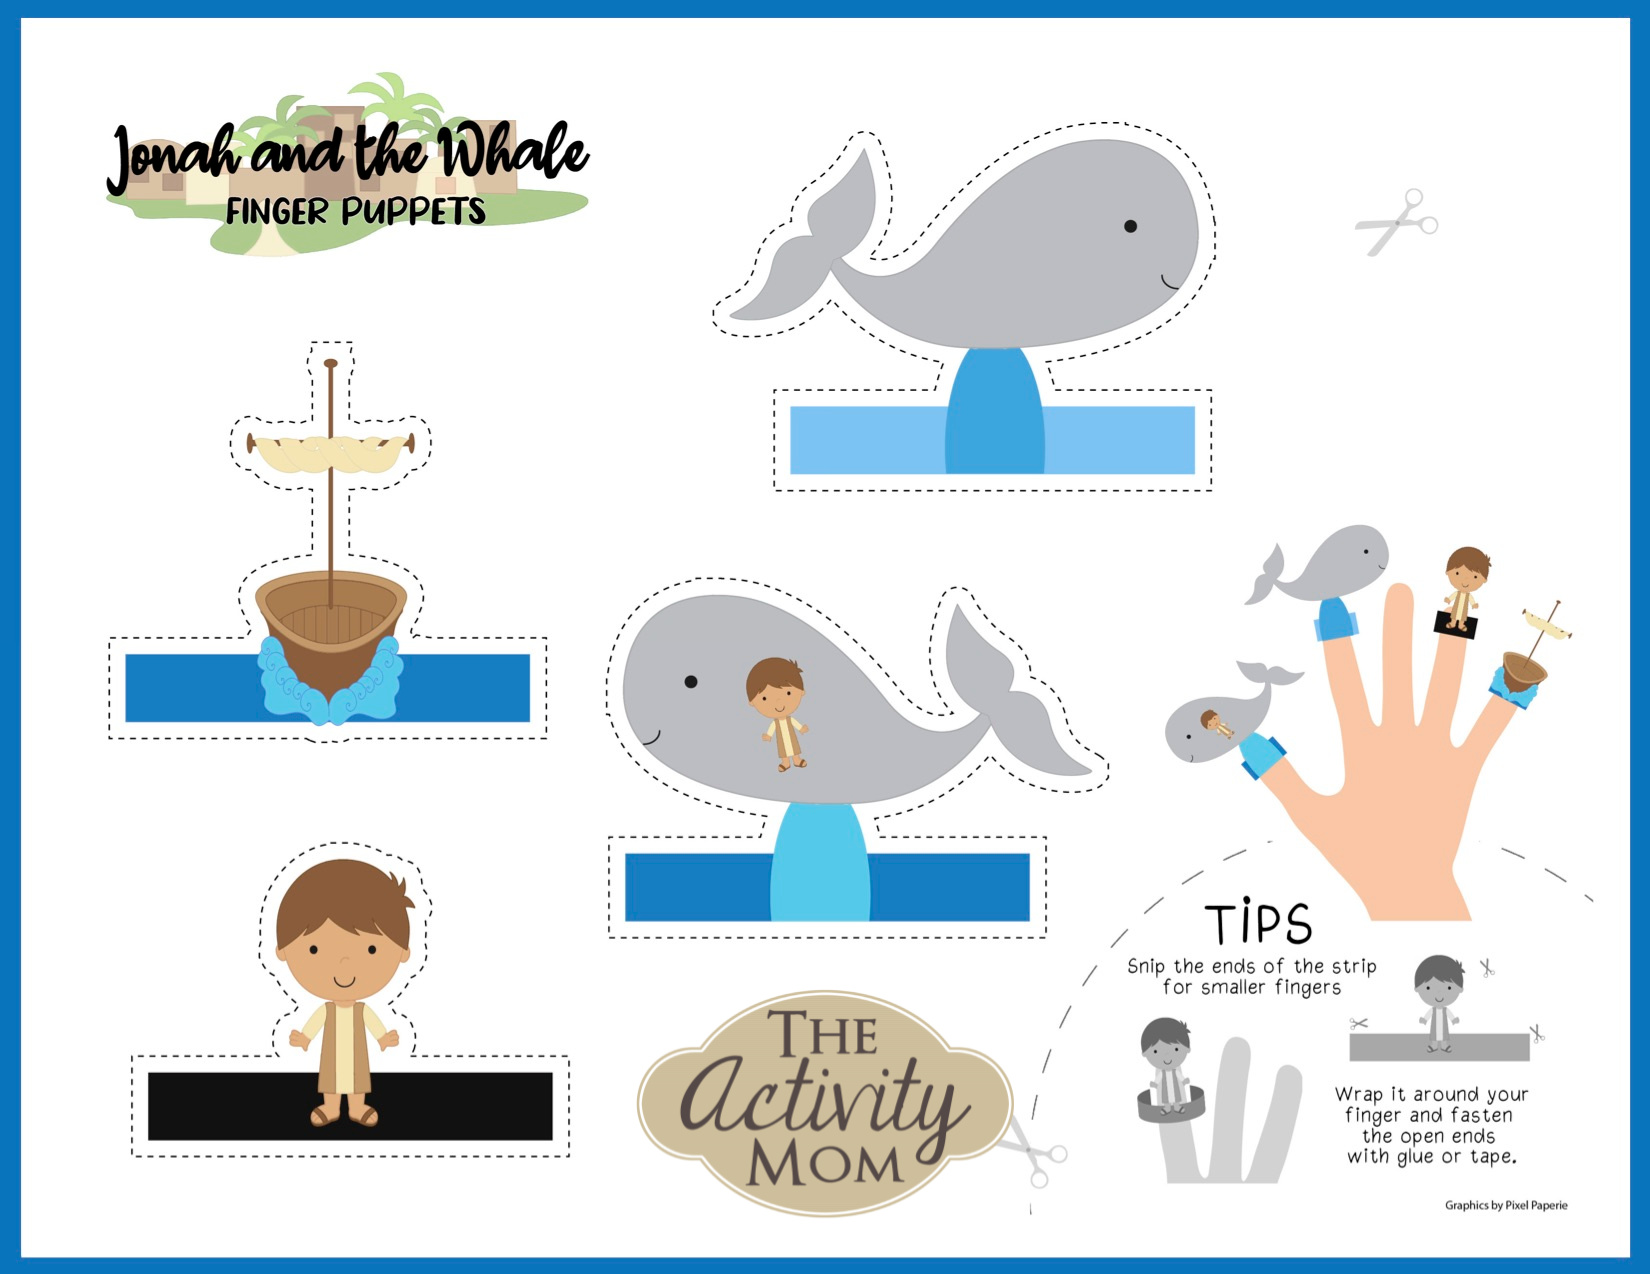 Jonah and the Whale Finger Puppets